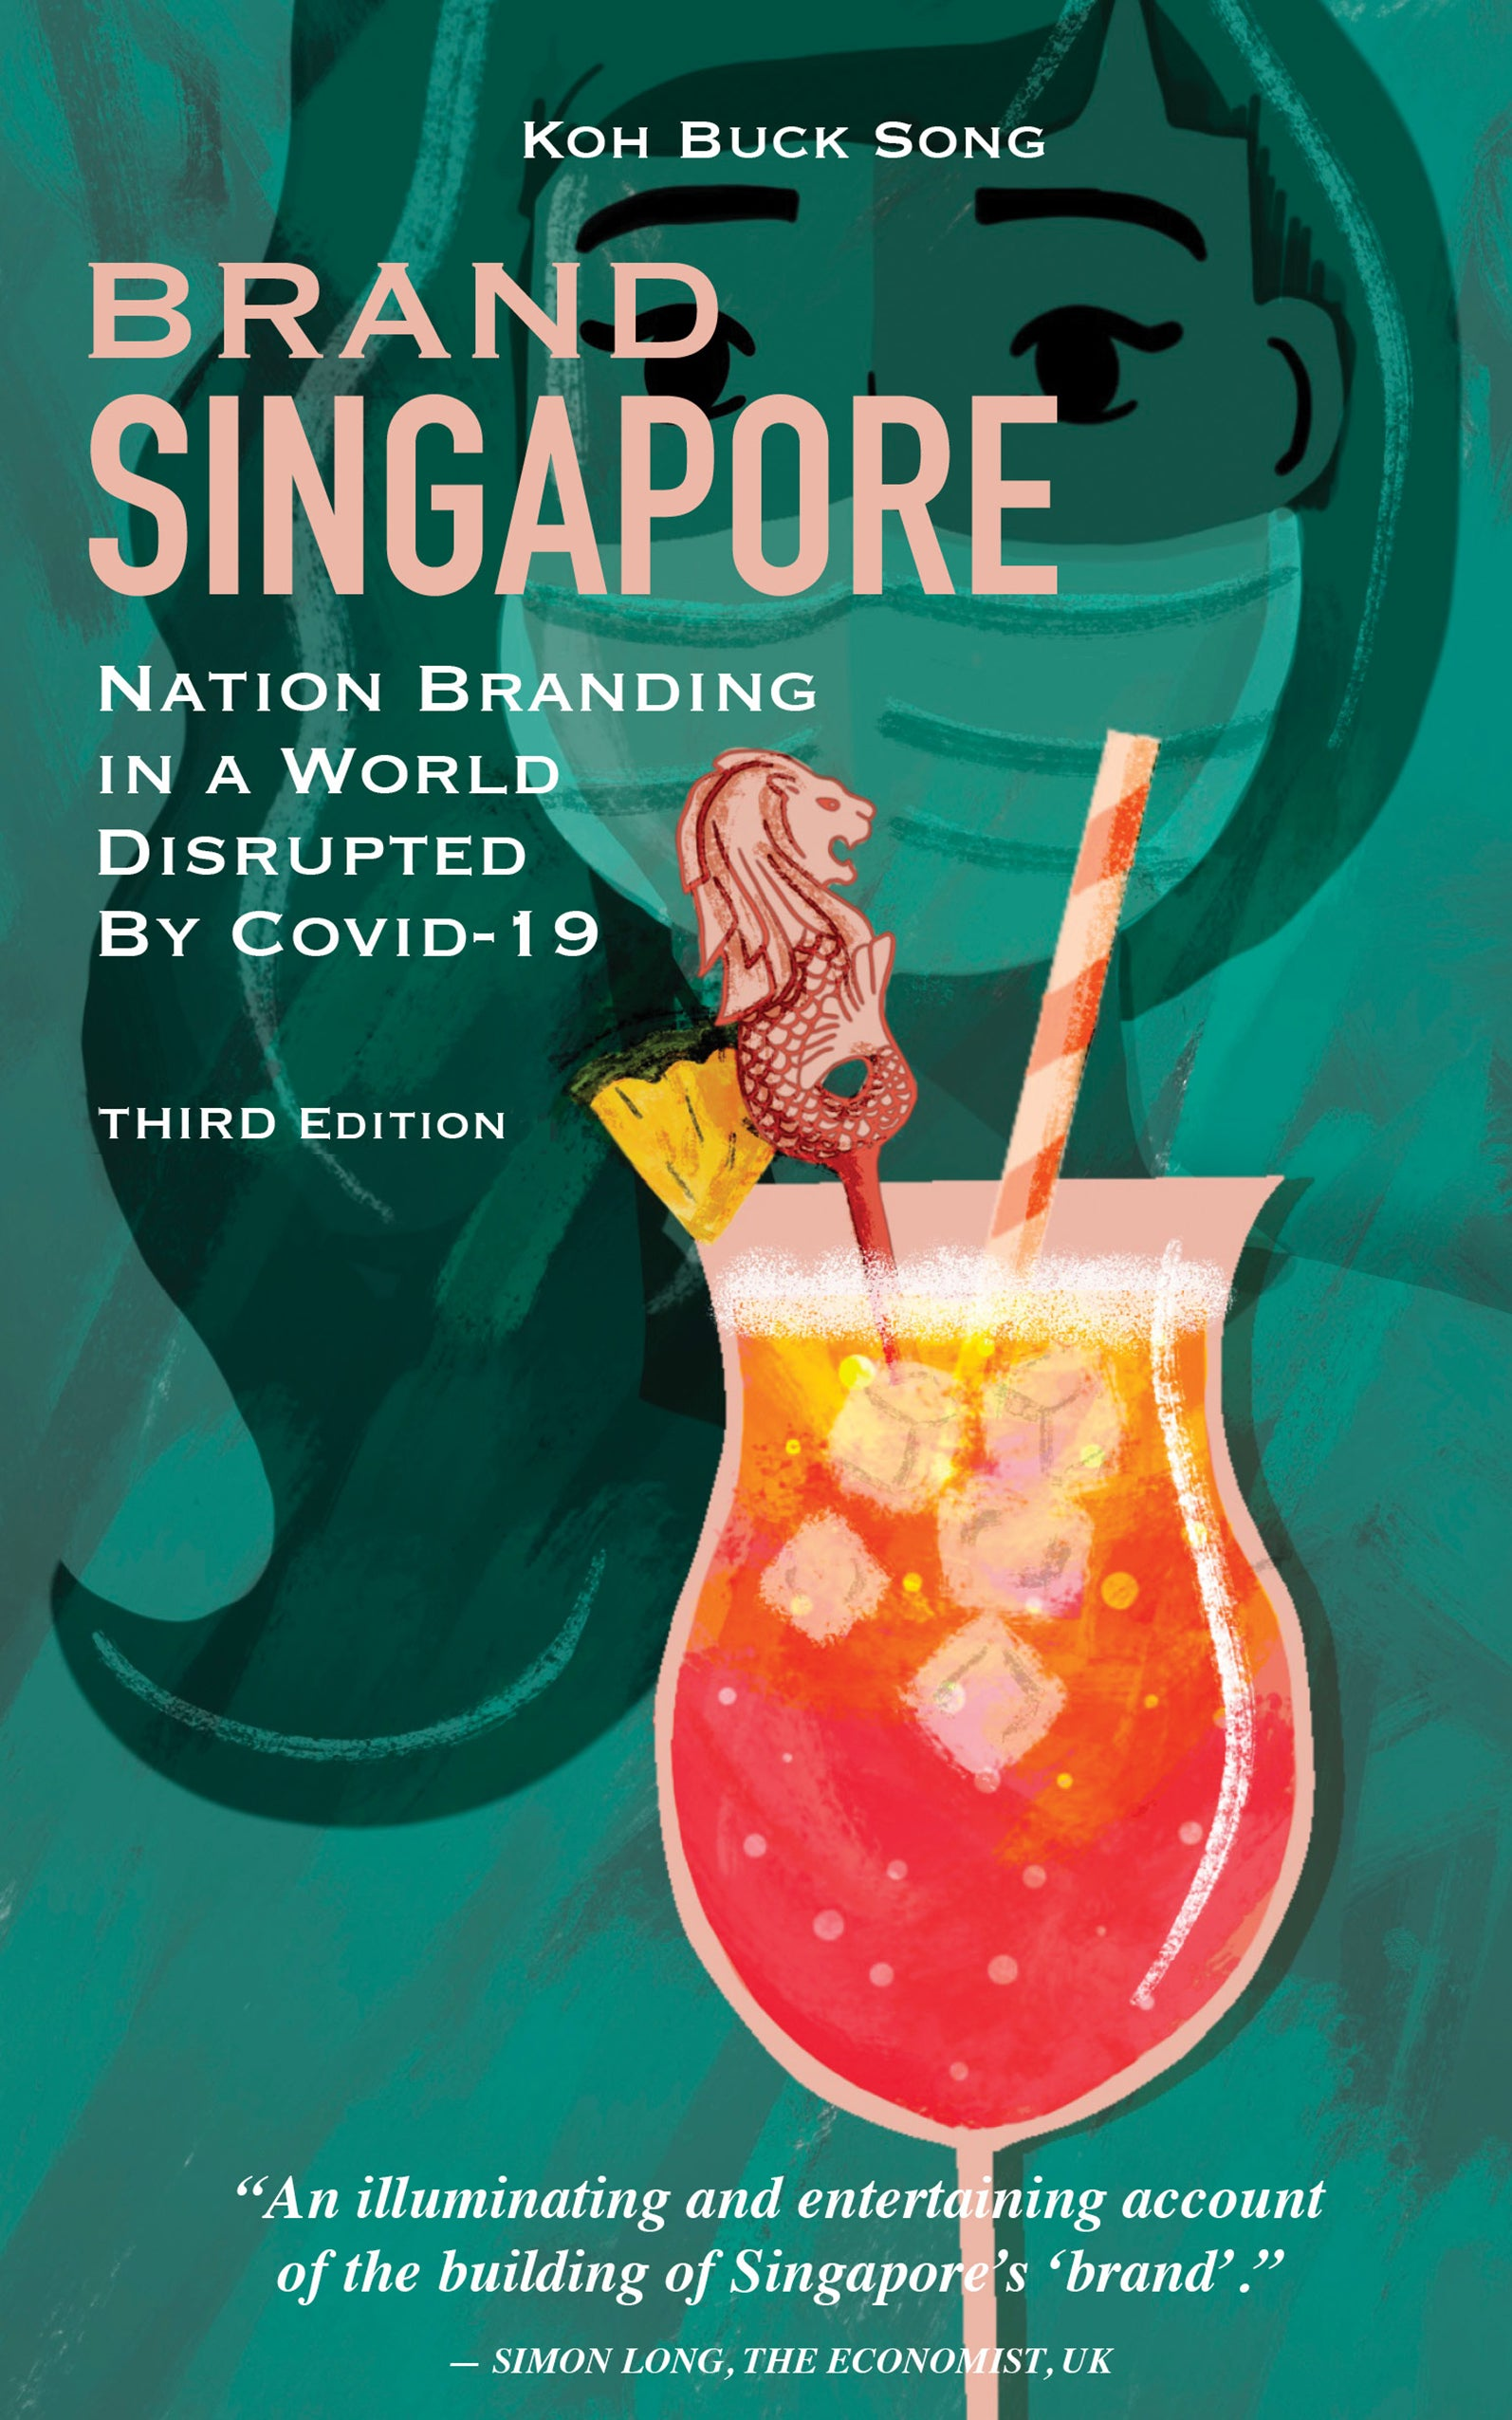 Brand Singapore: Nation Branding in a World Disrupted  by Covid-19 (Third Edition)